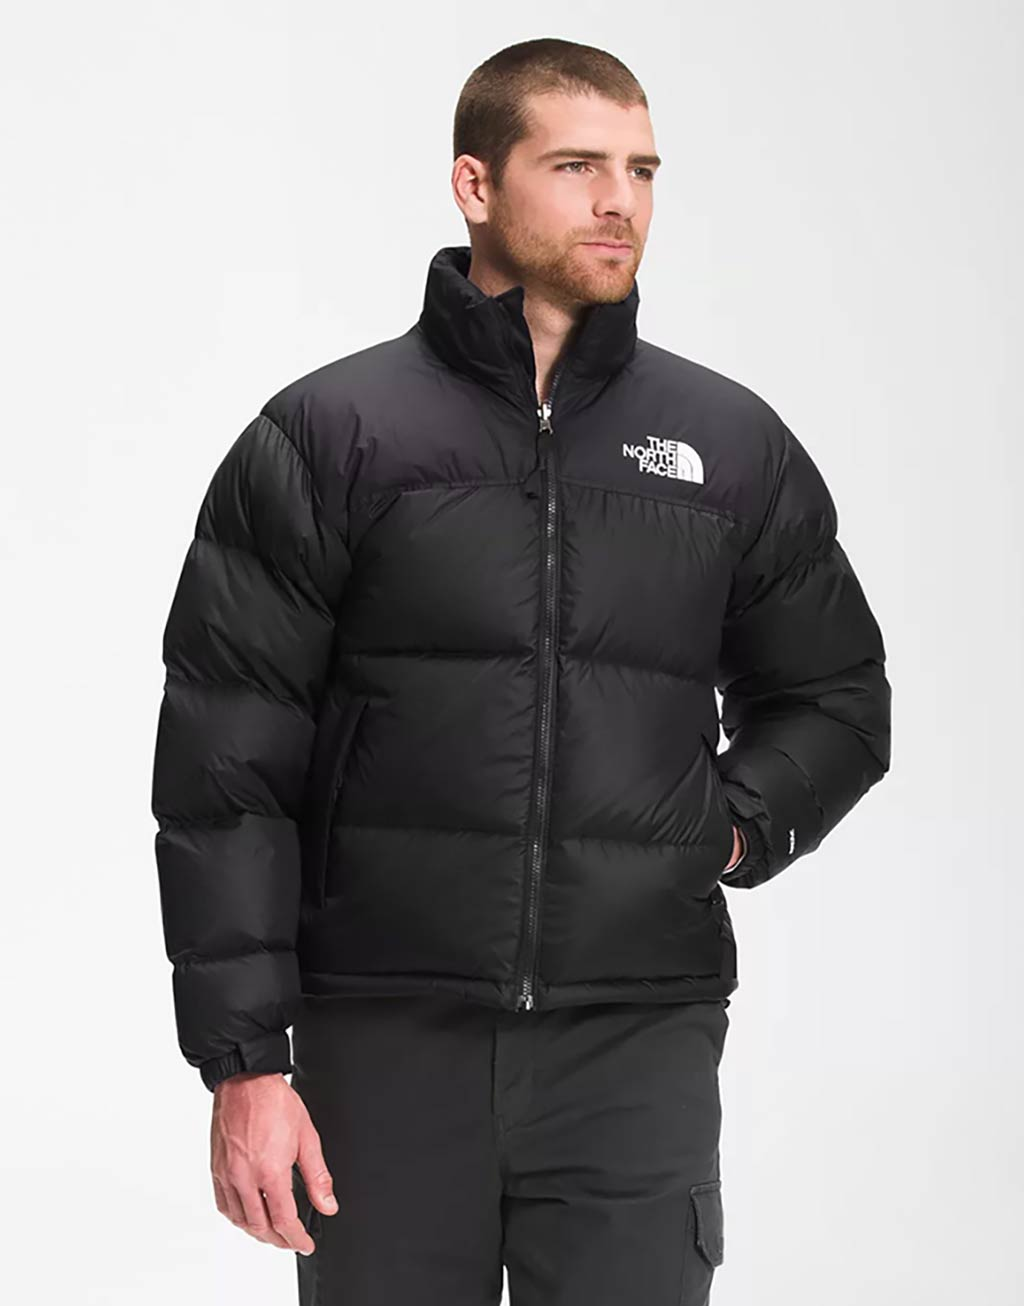 The Best North Face Jackets 1